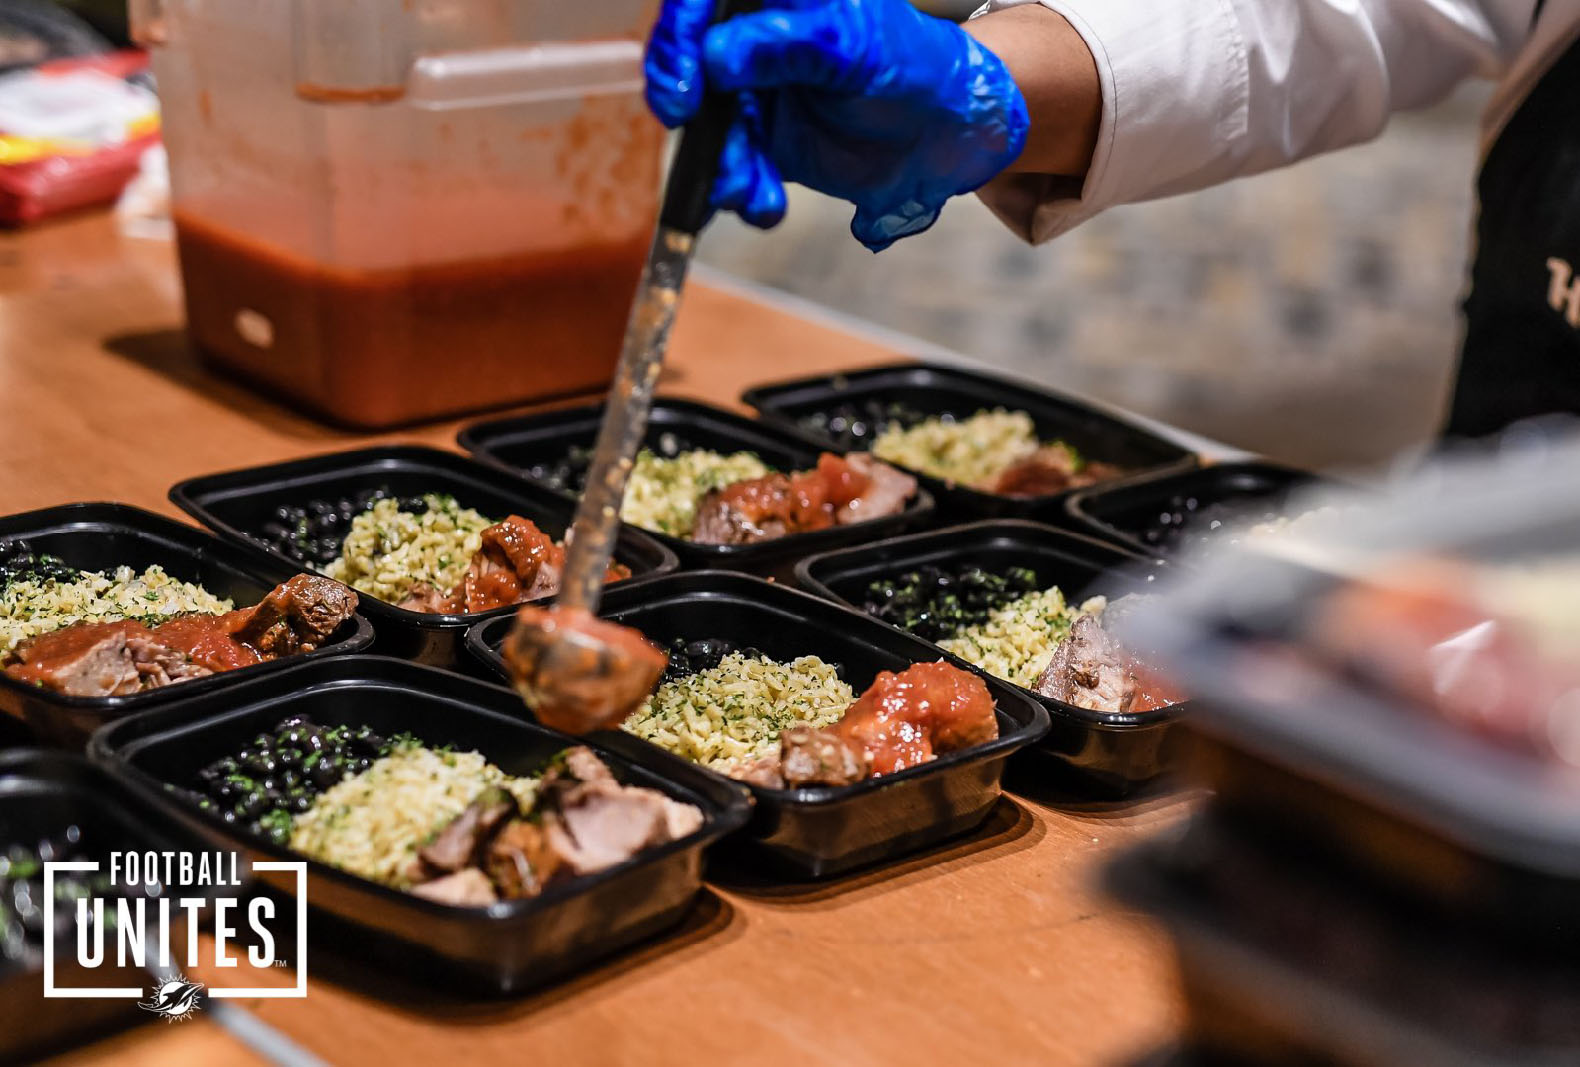 Meal Kits Thinking Outside The Box In Food Service Food Management